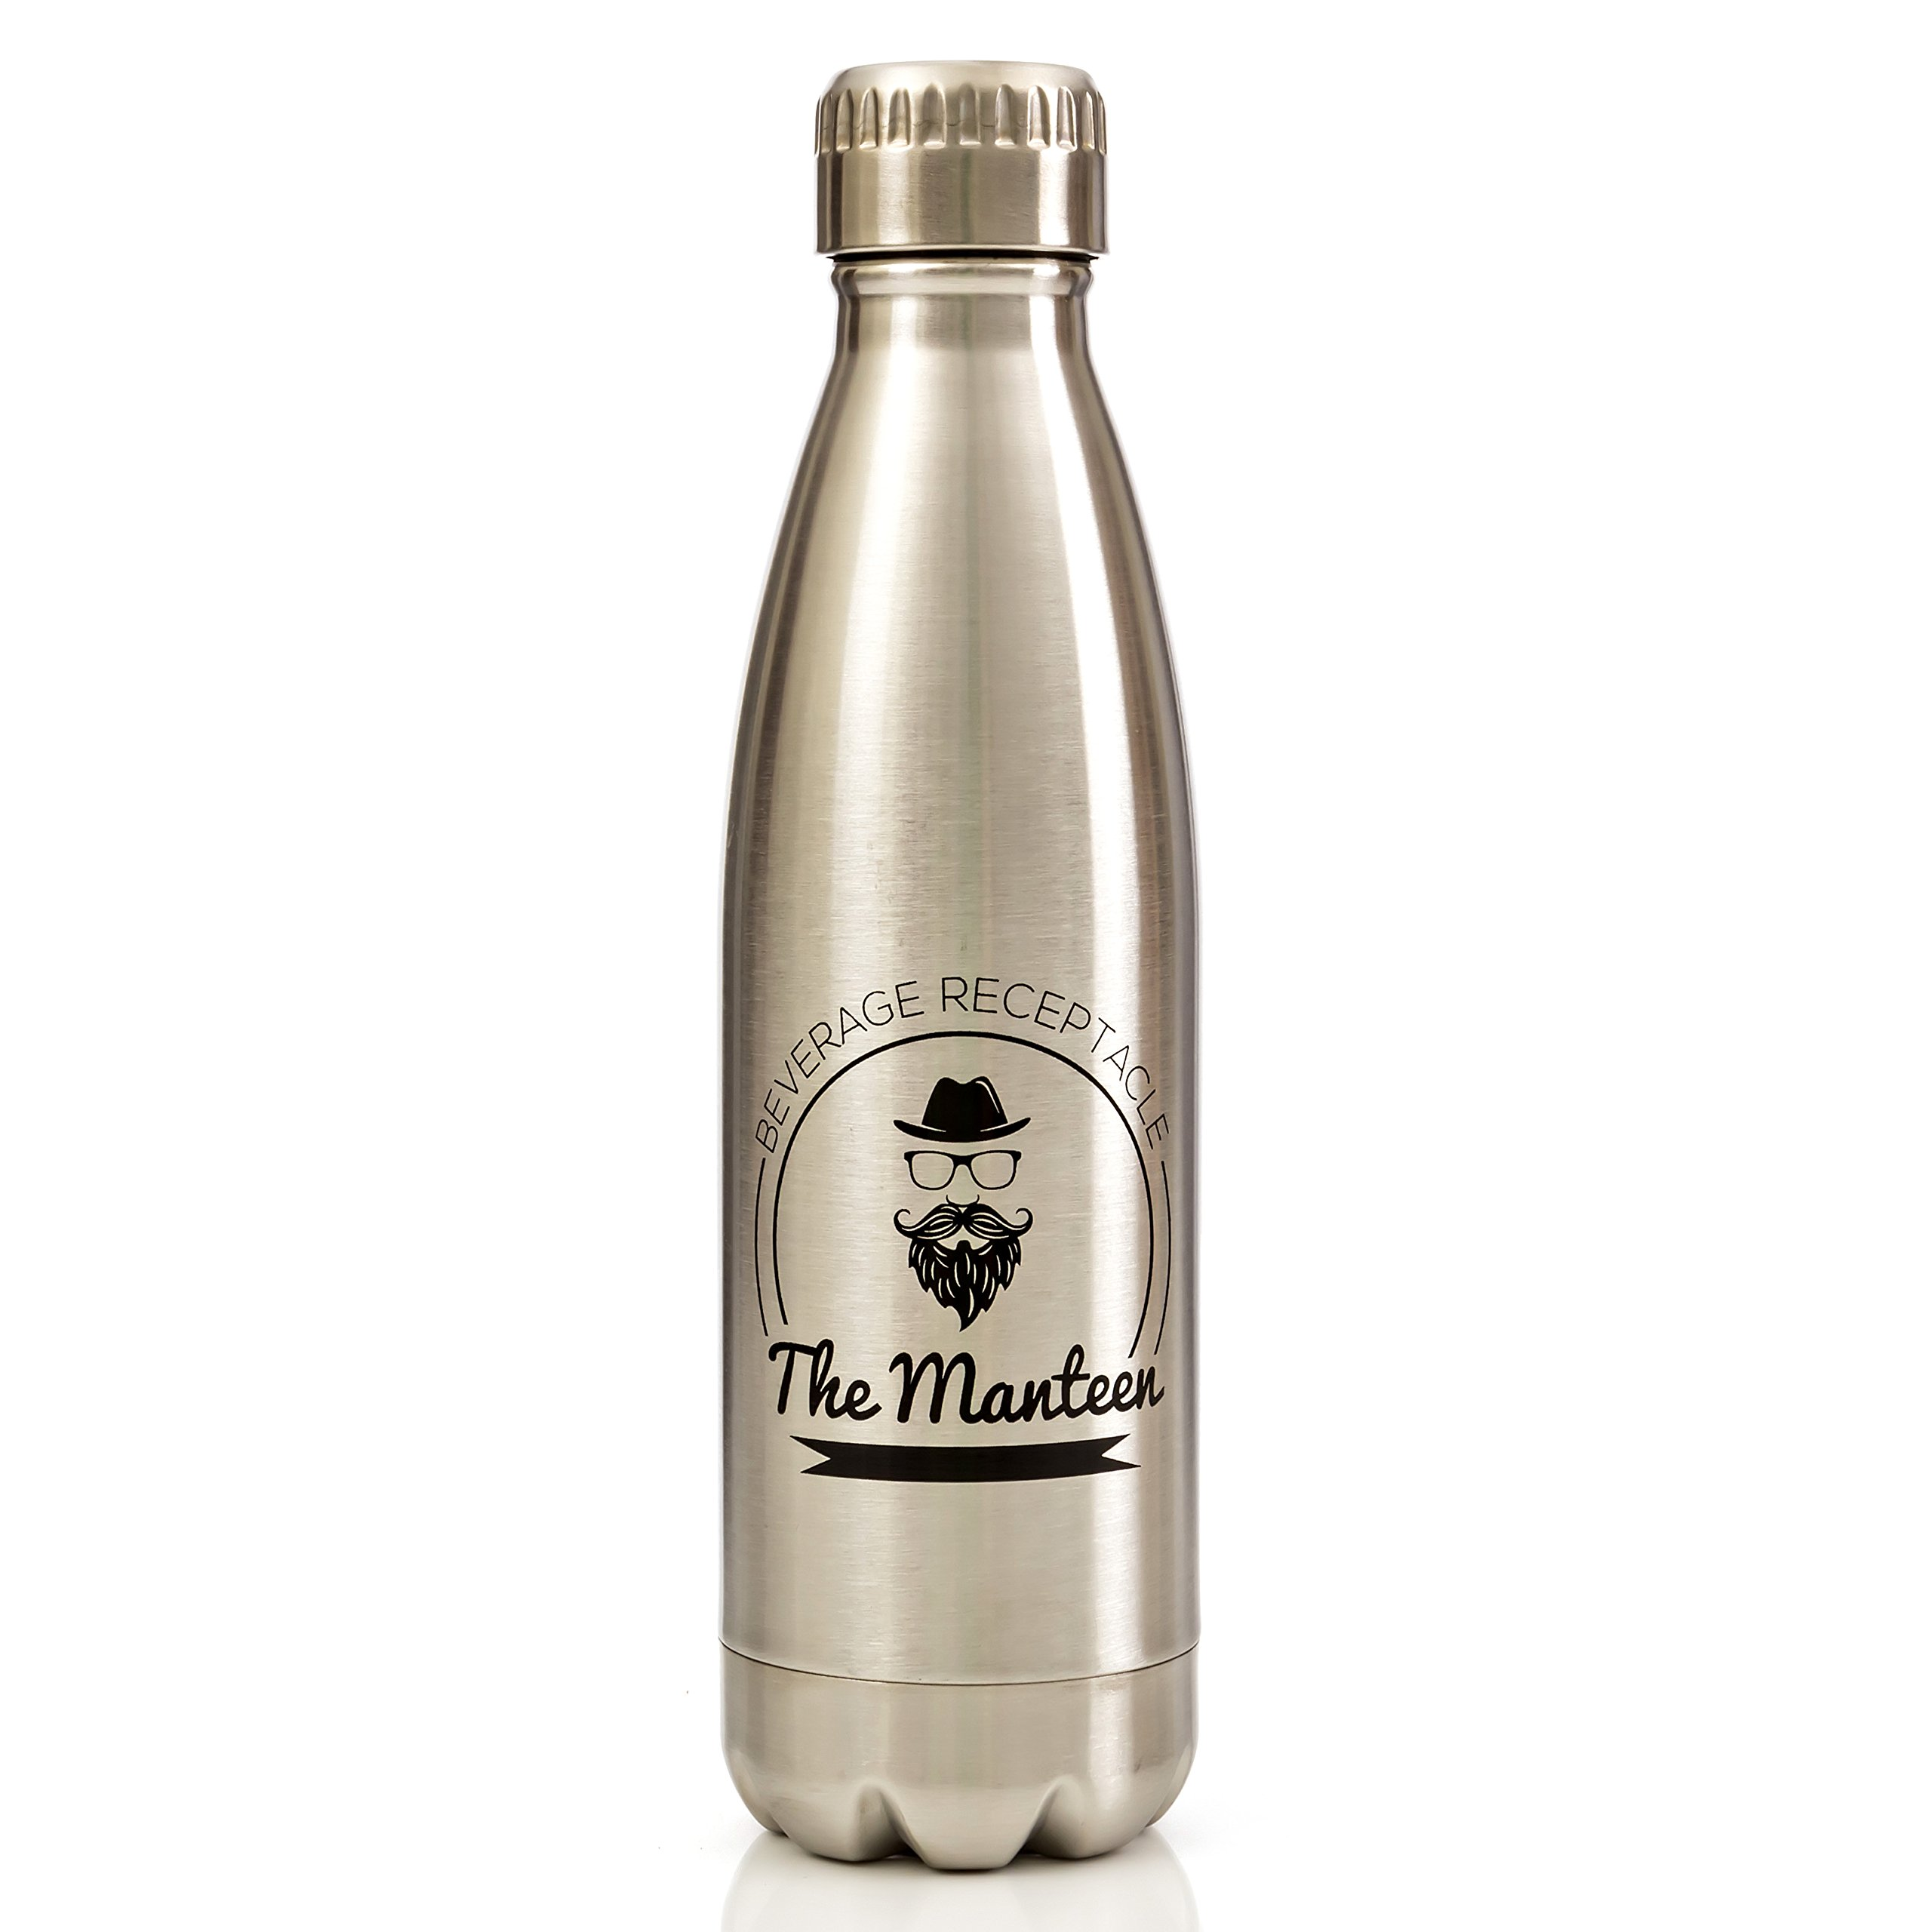 The Manteen Great Gifts For Men!, Keeps Your Beverage Hot or Cold all day, Stainless Steel Water Bottle, Double Walled Insulated